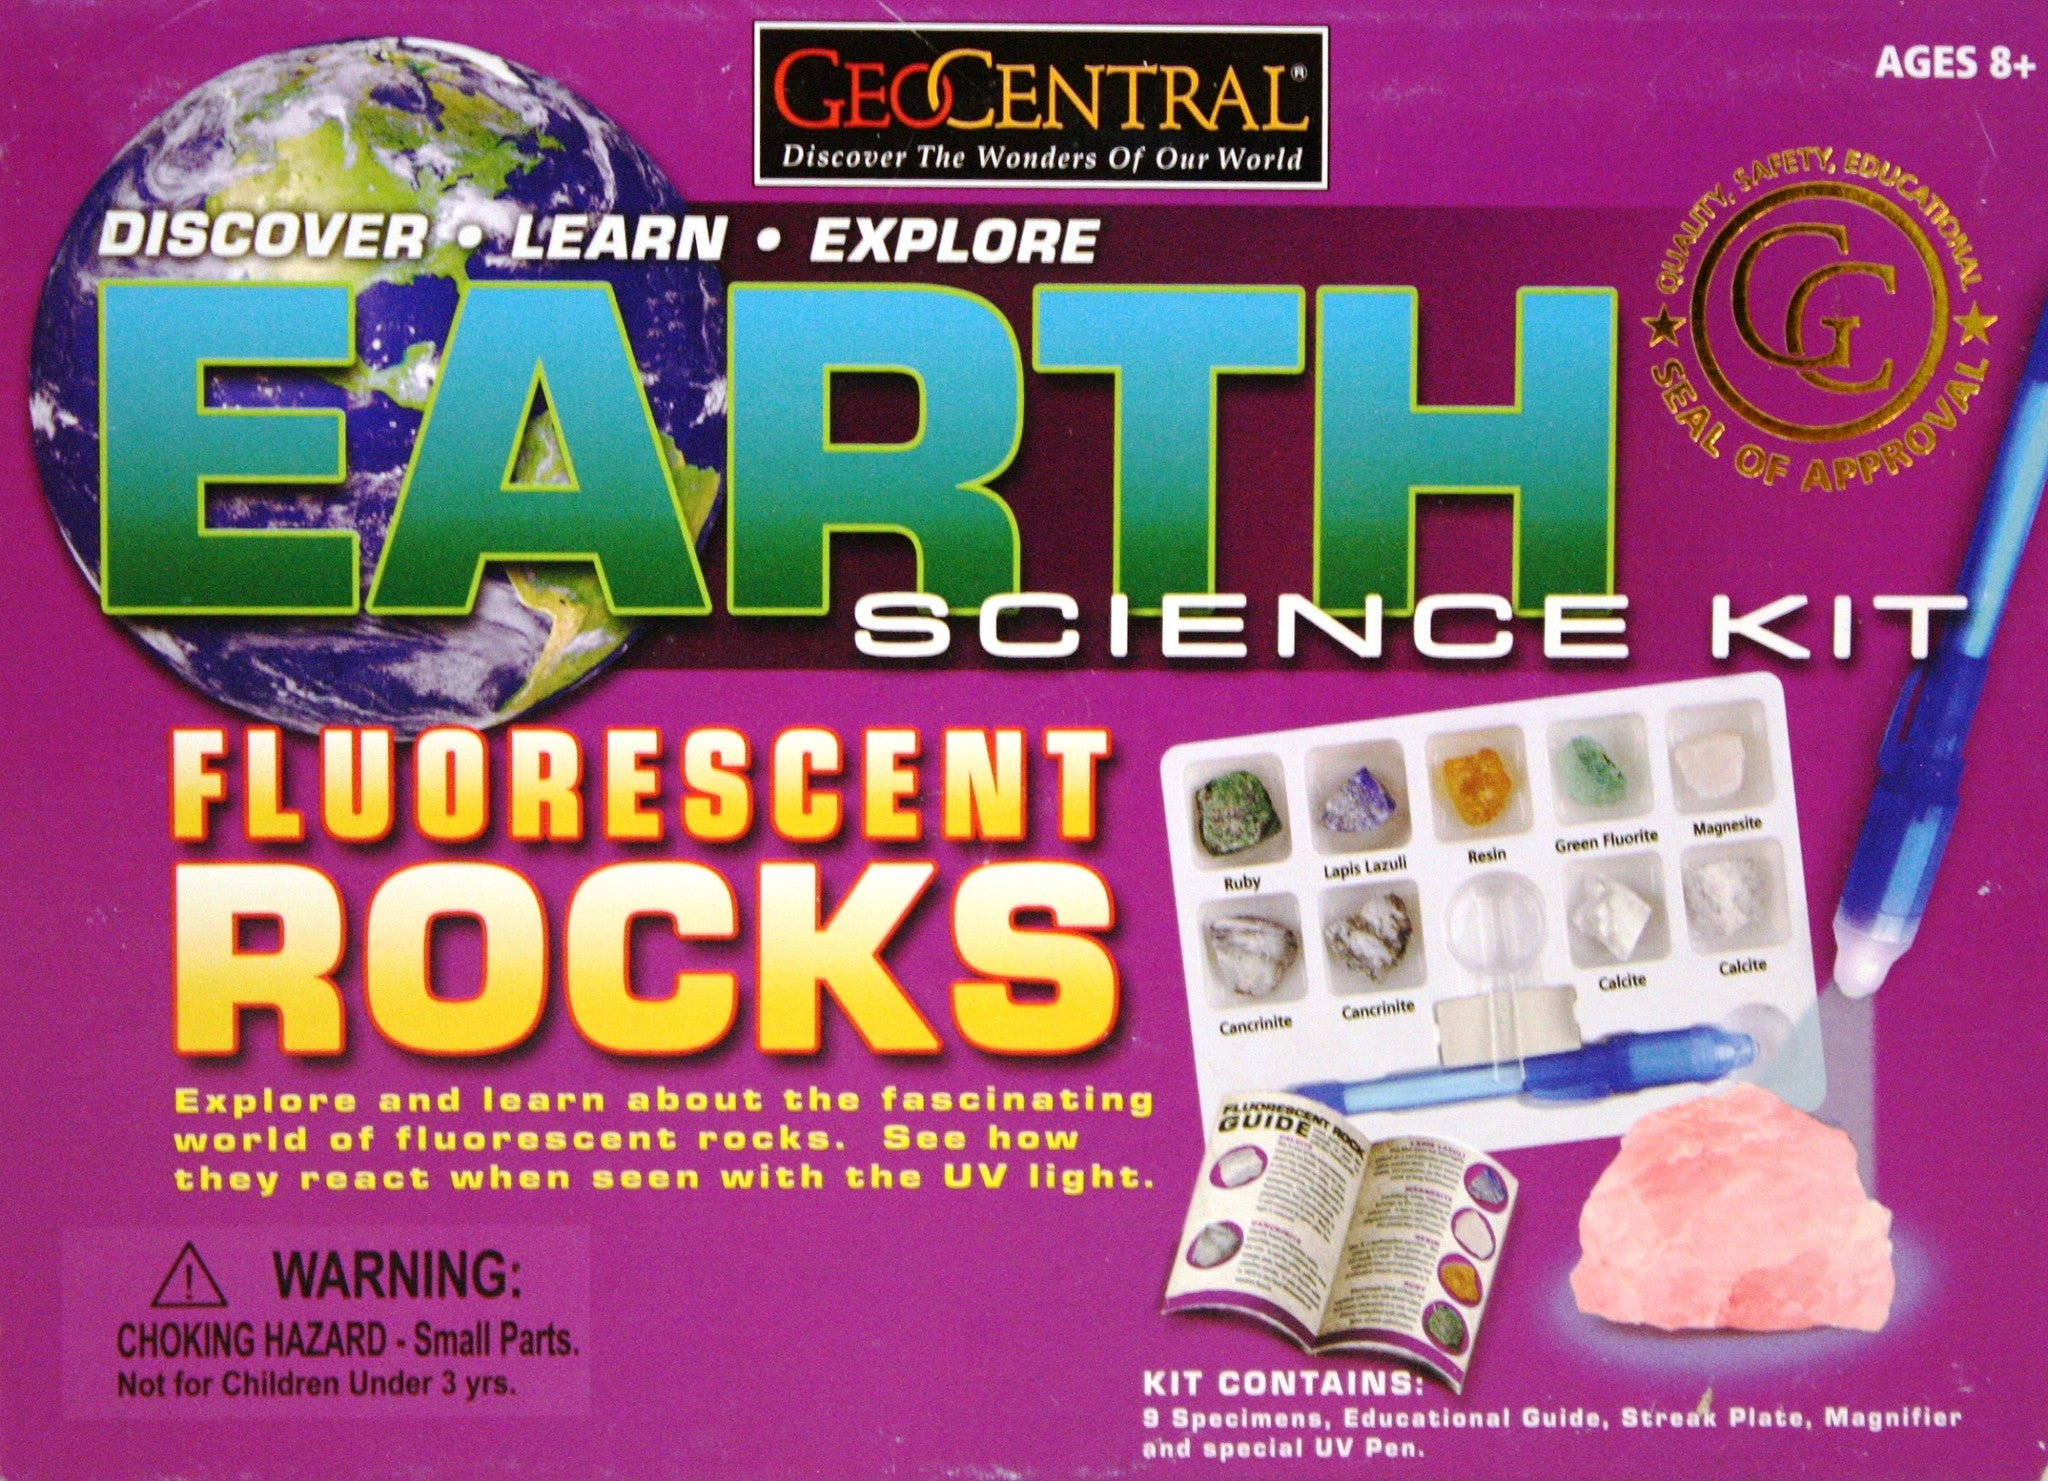 Earth Science Fluorescent Rocks Kit w/UV Pen by GeoCentral - Off The Wall Toys and Gifts